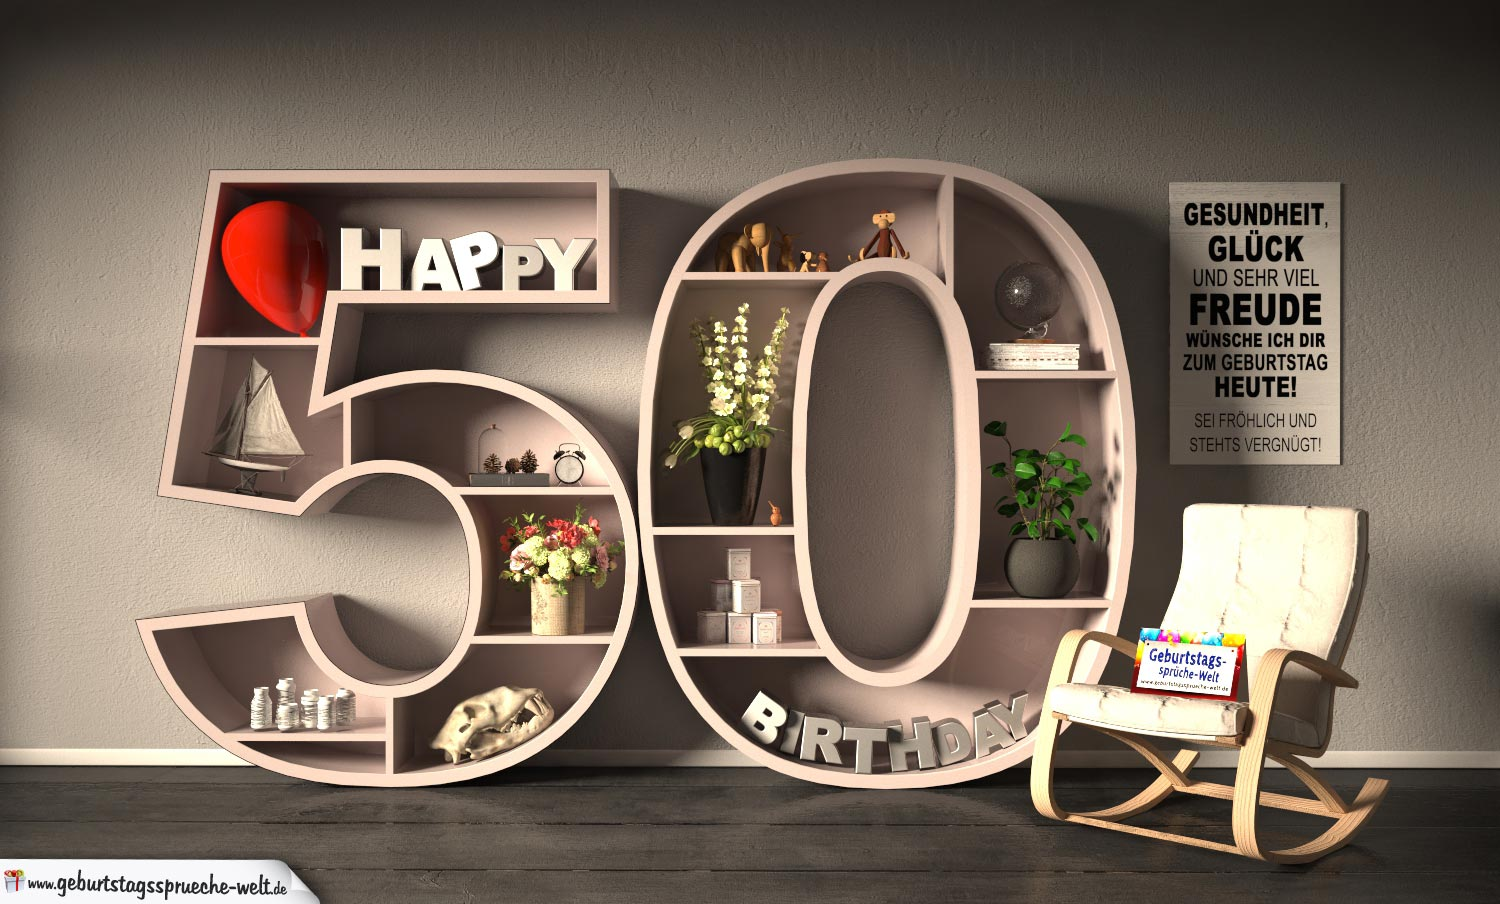 kostenlose geburtstagskarte happy birthday mit spruch zum 50 geburtstag geburtstagsspr che welt. Black Bedroom Furniture Sets. Home Design Ideas